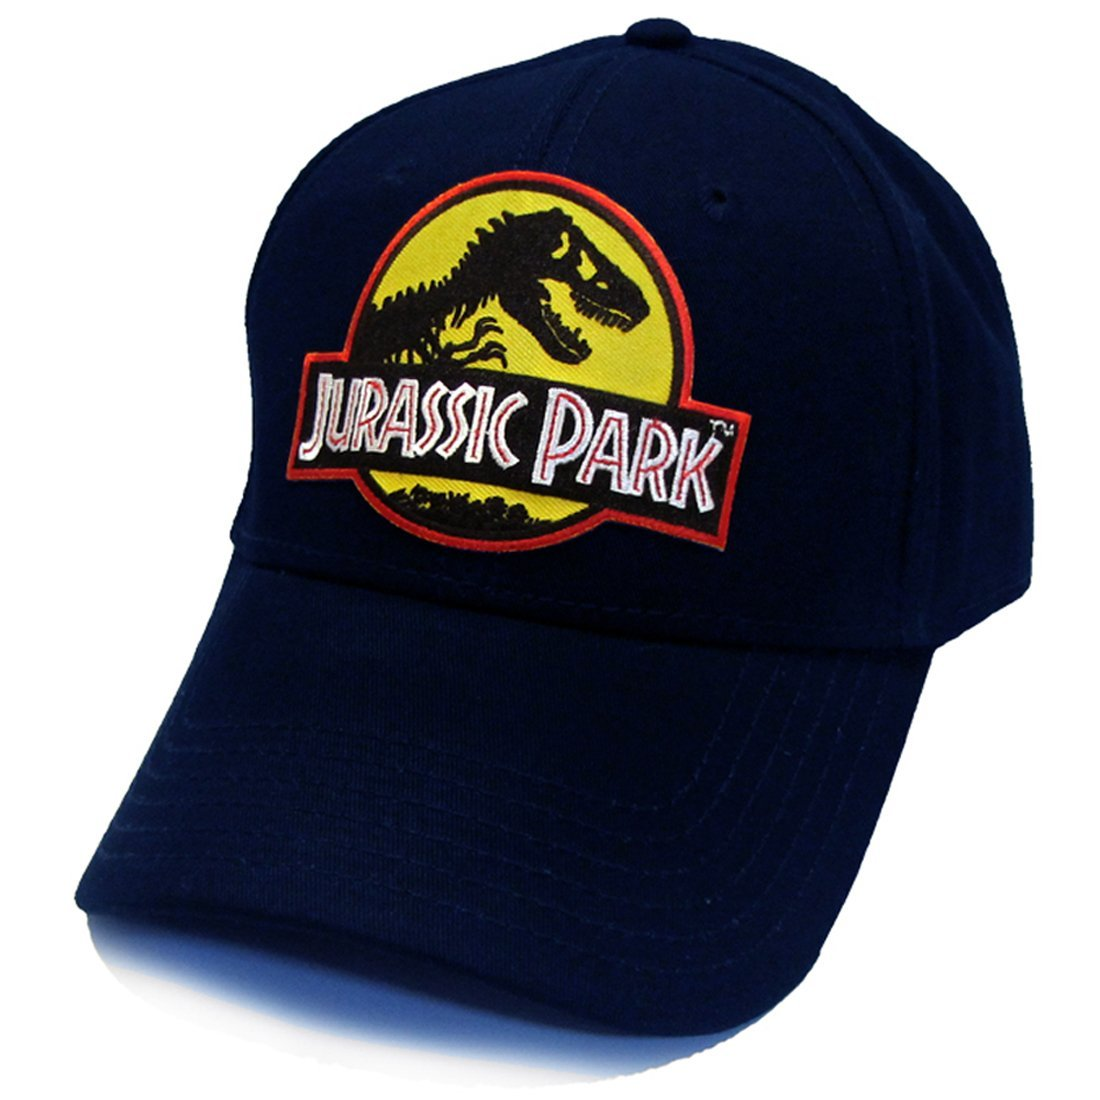 Jurassic Park Movie Logo Yellow Patch Baseball Adjustable Navy Cap Hat 4f51df9e68f5